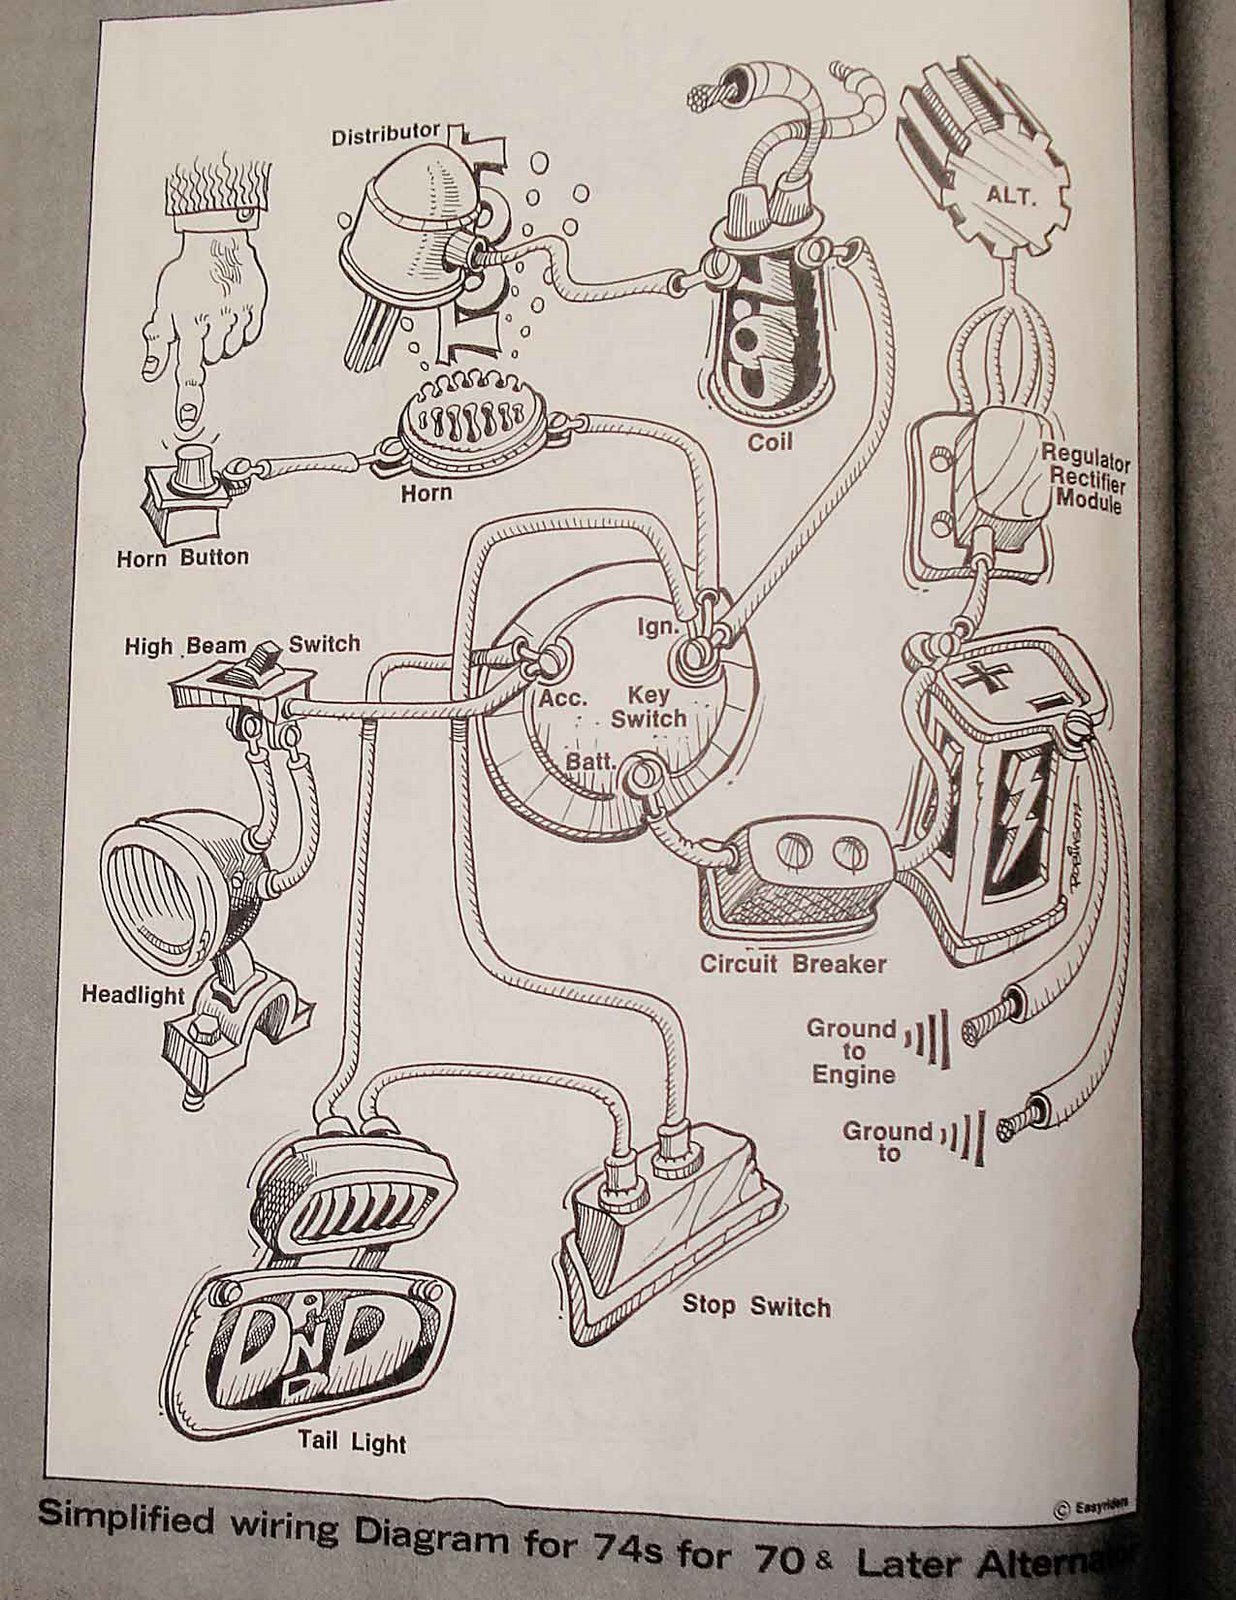 89 Sportster Wiring Diagram 89 Get Free Image About Wiring Diagram